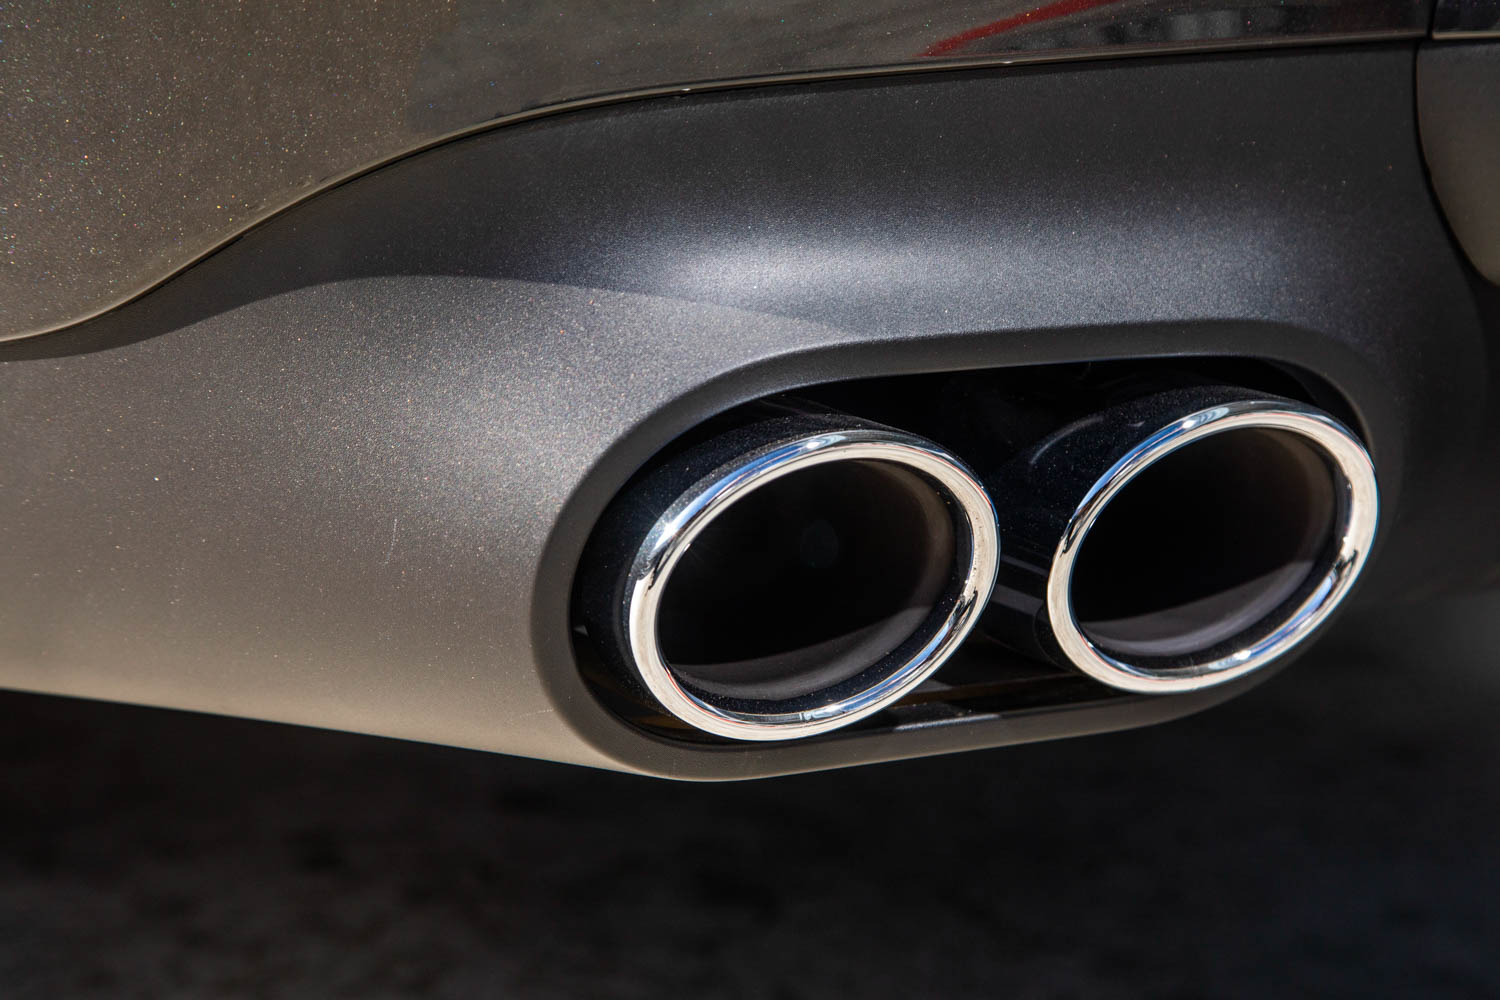 2019 Mercedes-AMG CLS53 exhaust tips